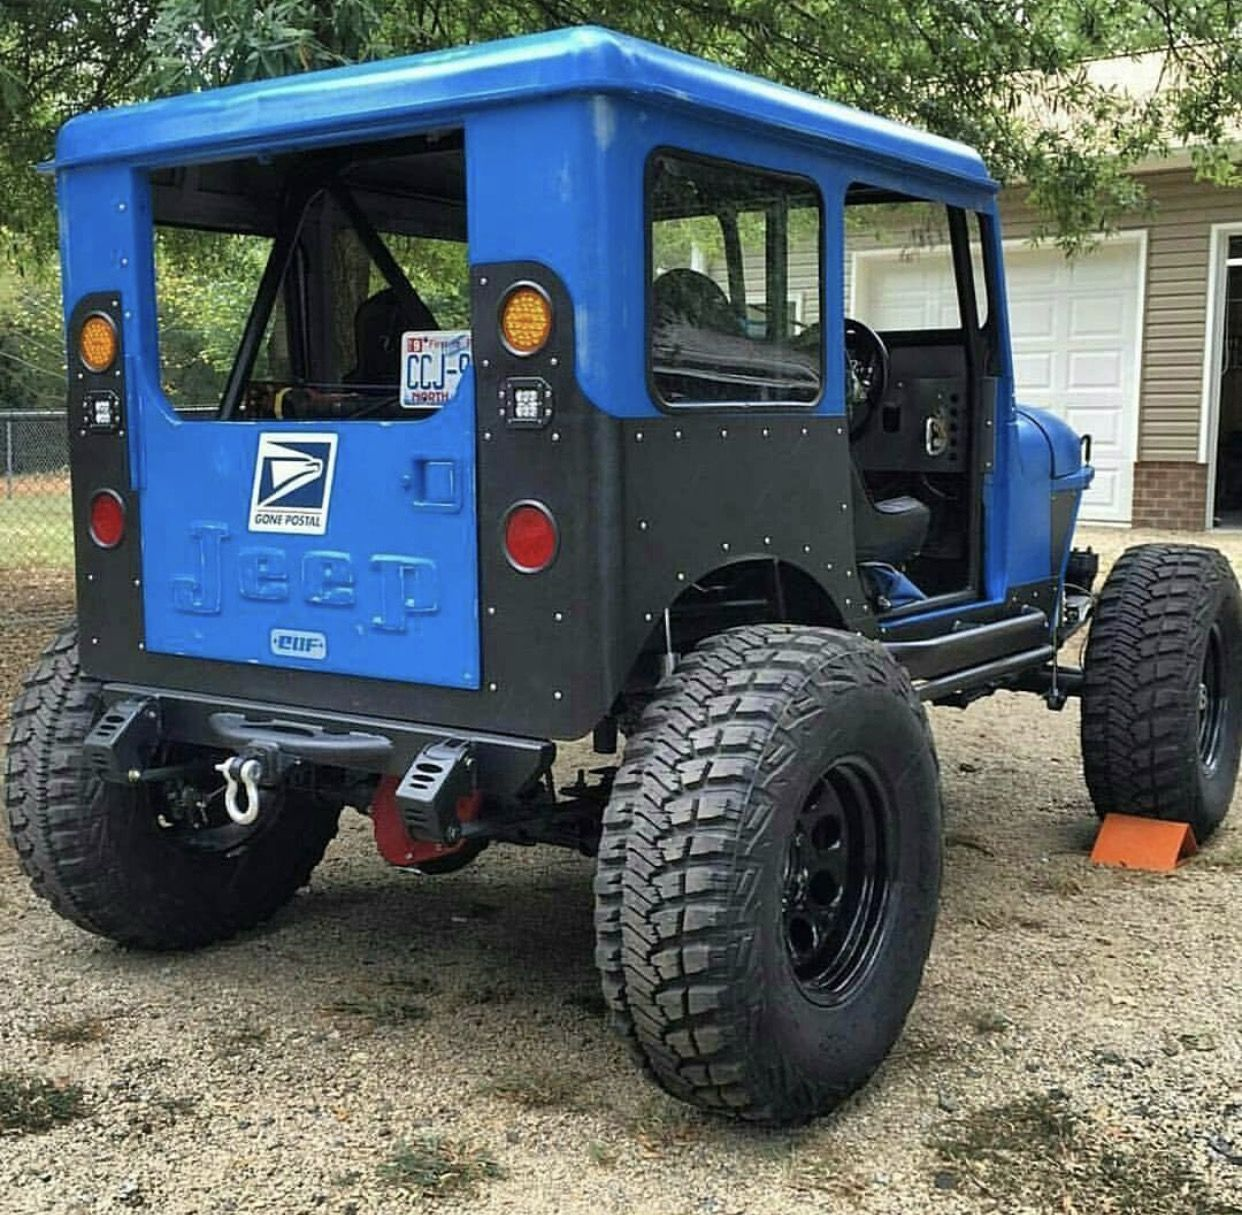 Mail Jeep | Jeep OllllO | Pinterest | Jeeps, Jeep stuff and 4x4